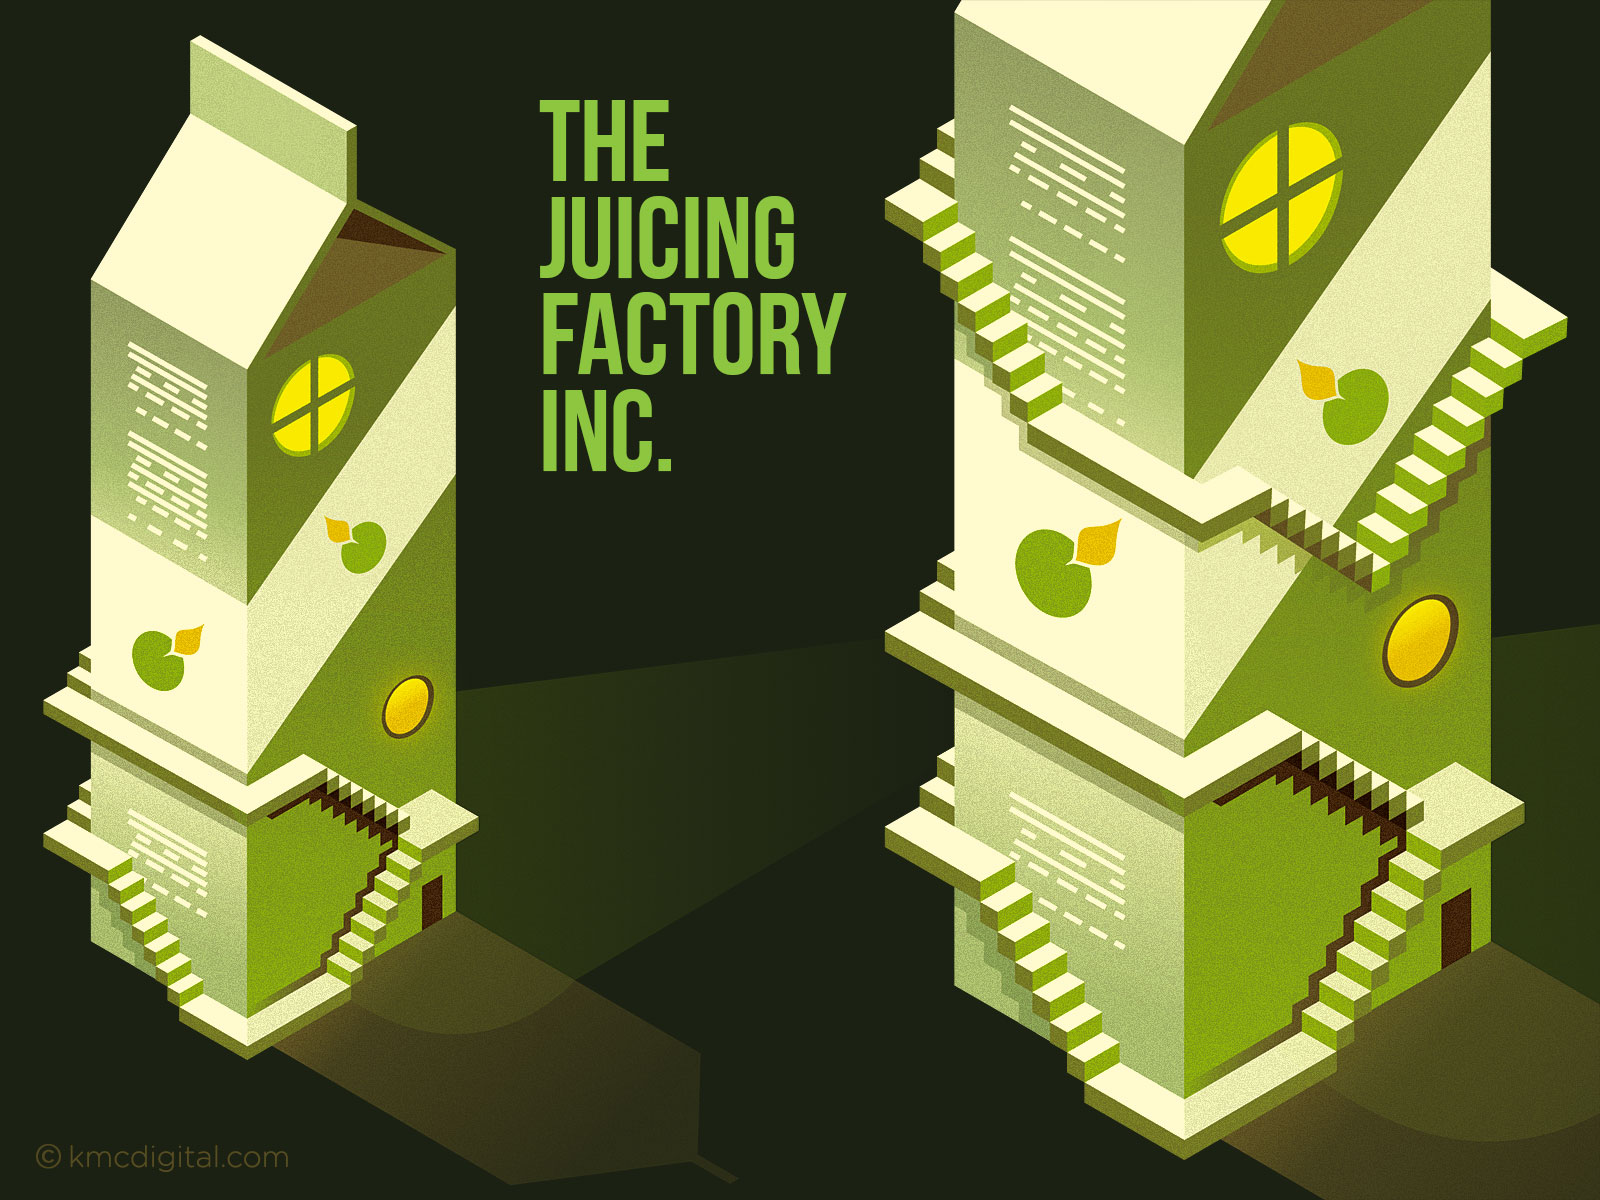 Juicing Factory Illustration vignette